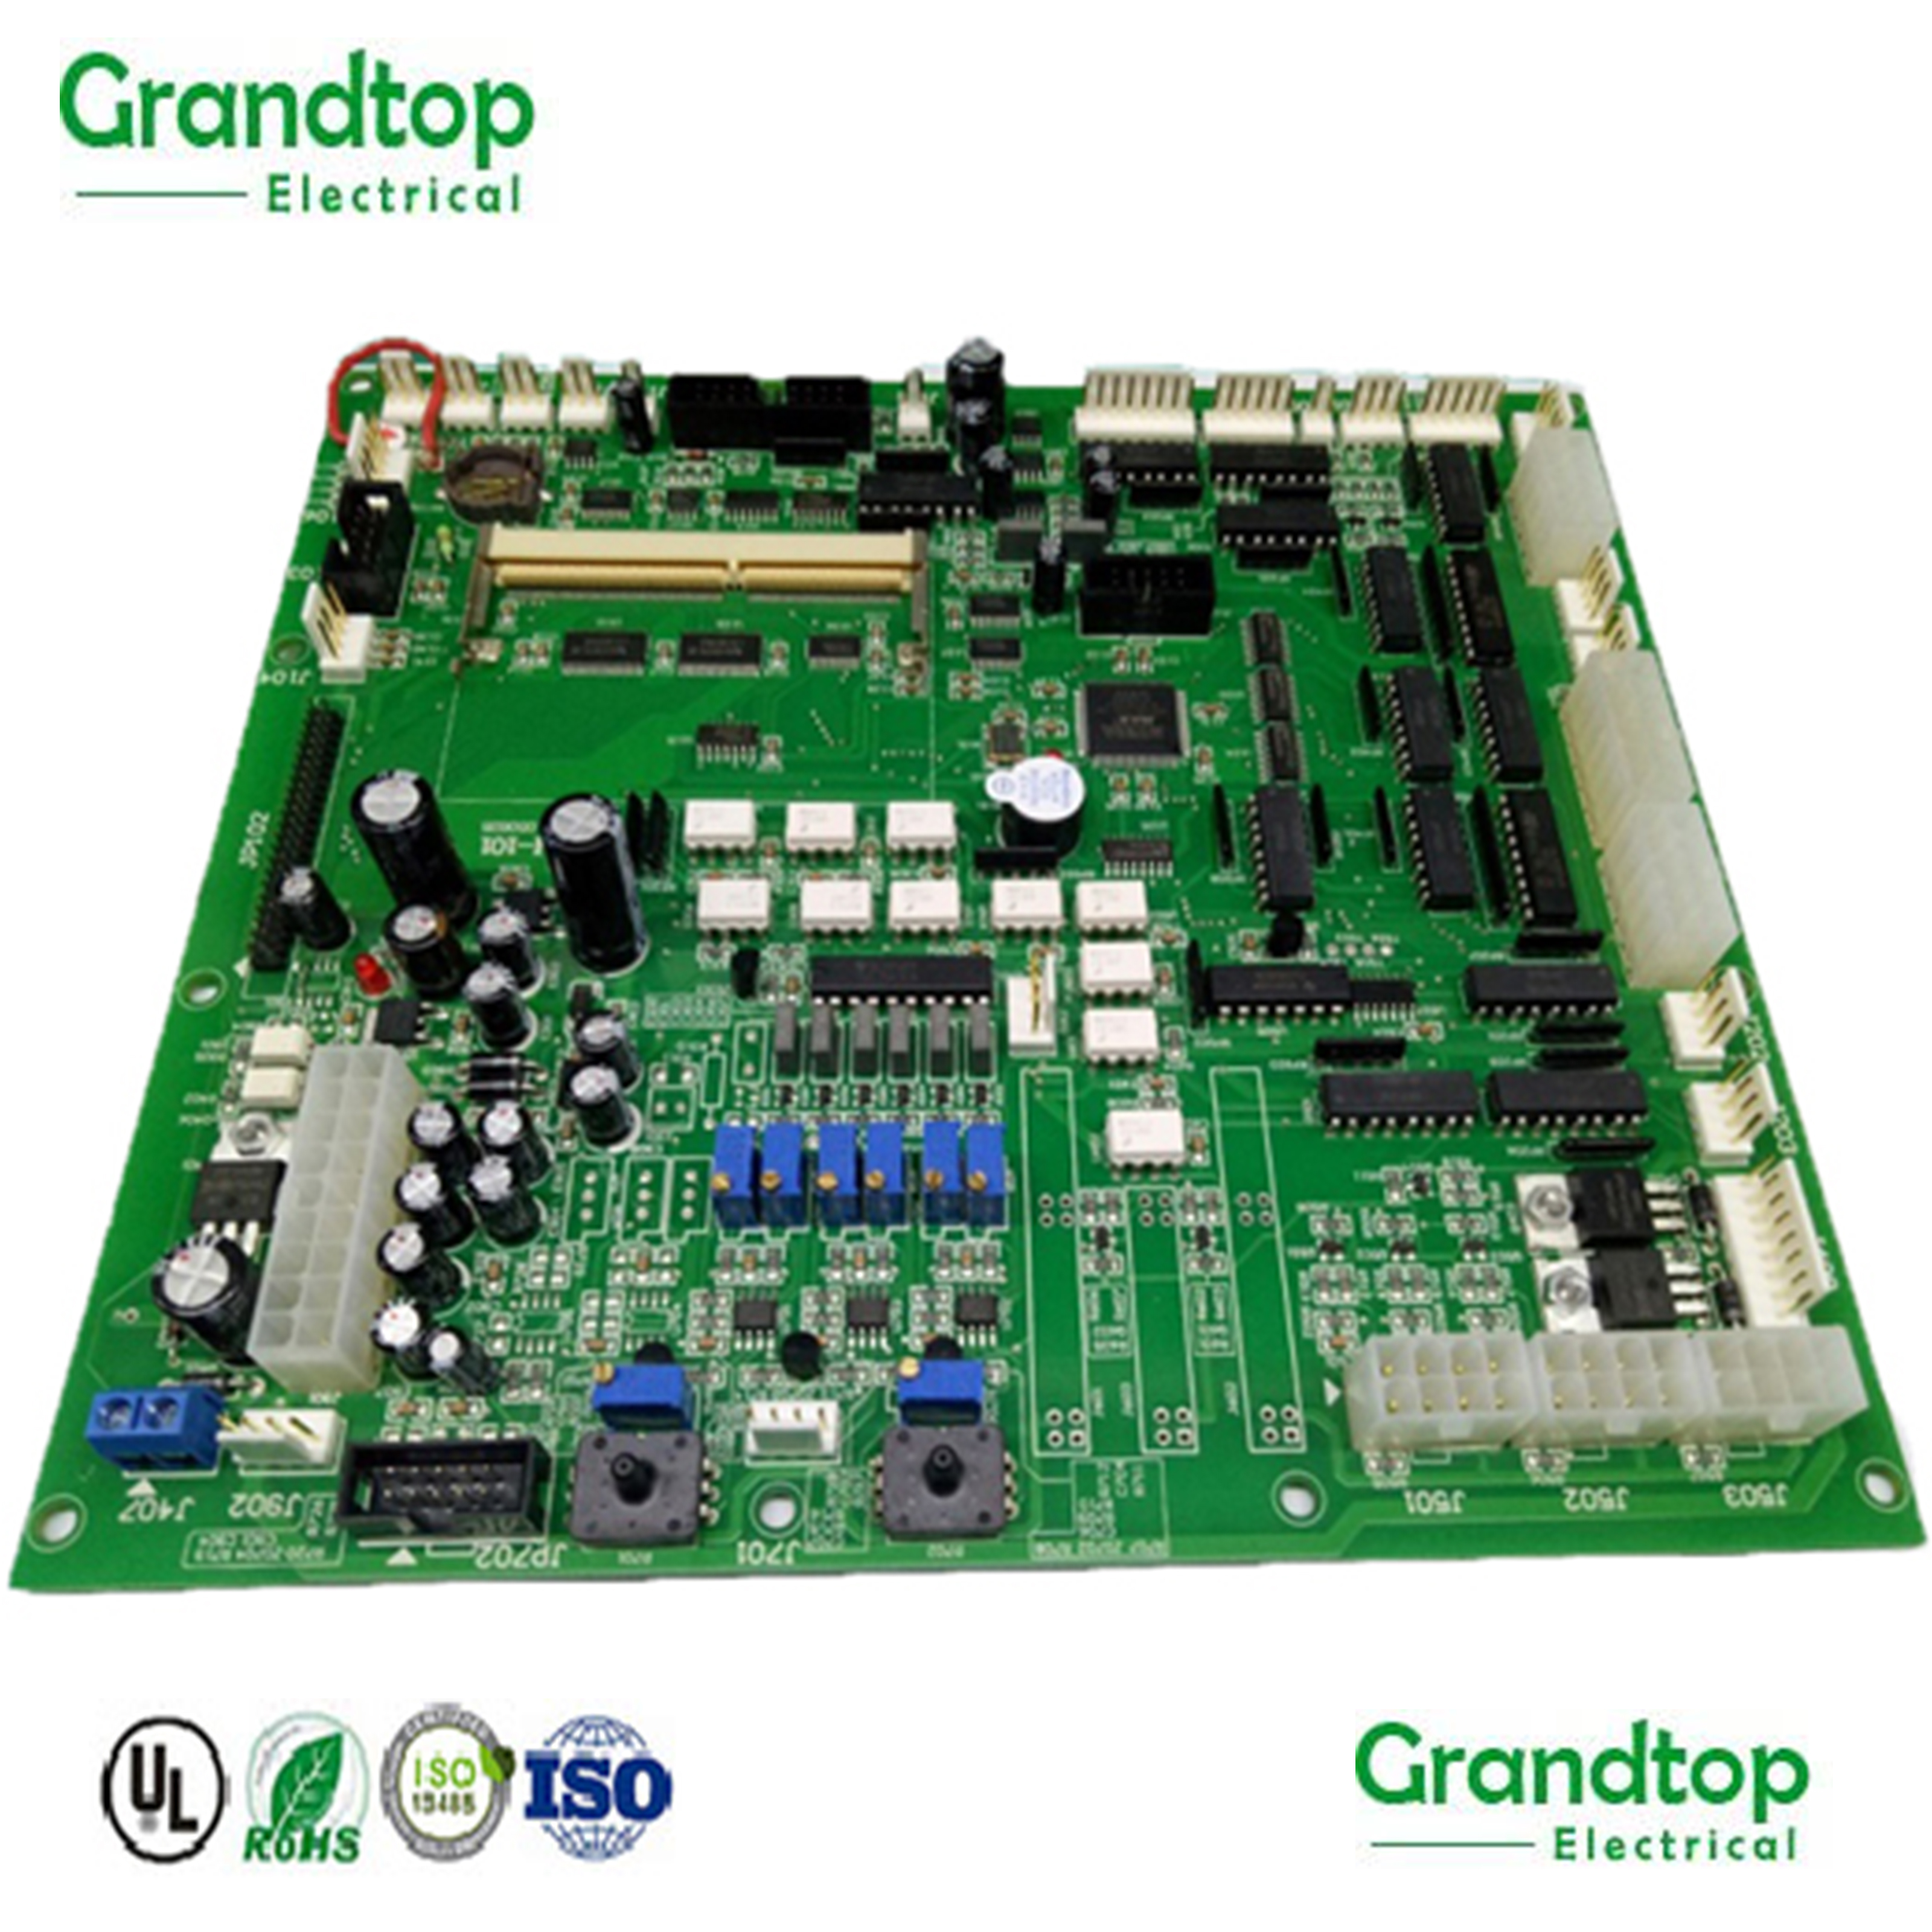 China Contracts Provider Manufacturers And Image Custom Printed Circuit Board Assembly Process Rohs Compliant Suppliers On Alibabacom